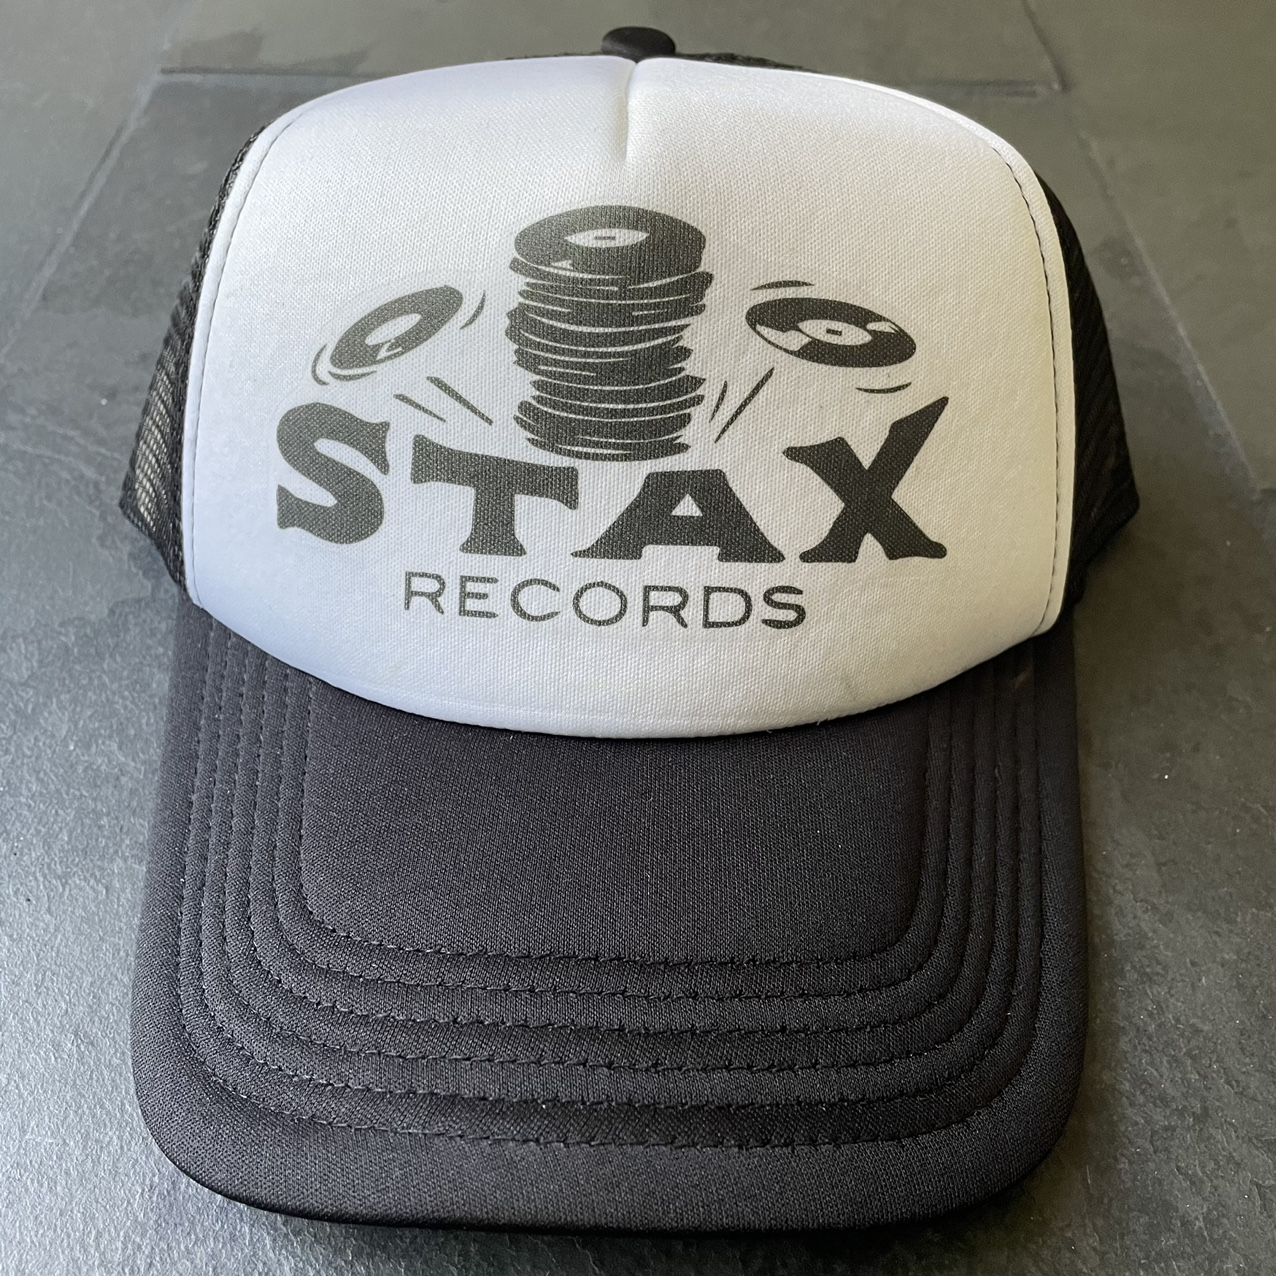 Product Image 1 - Stax records trucker hat Brand new